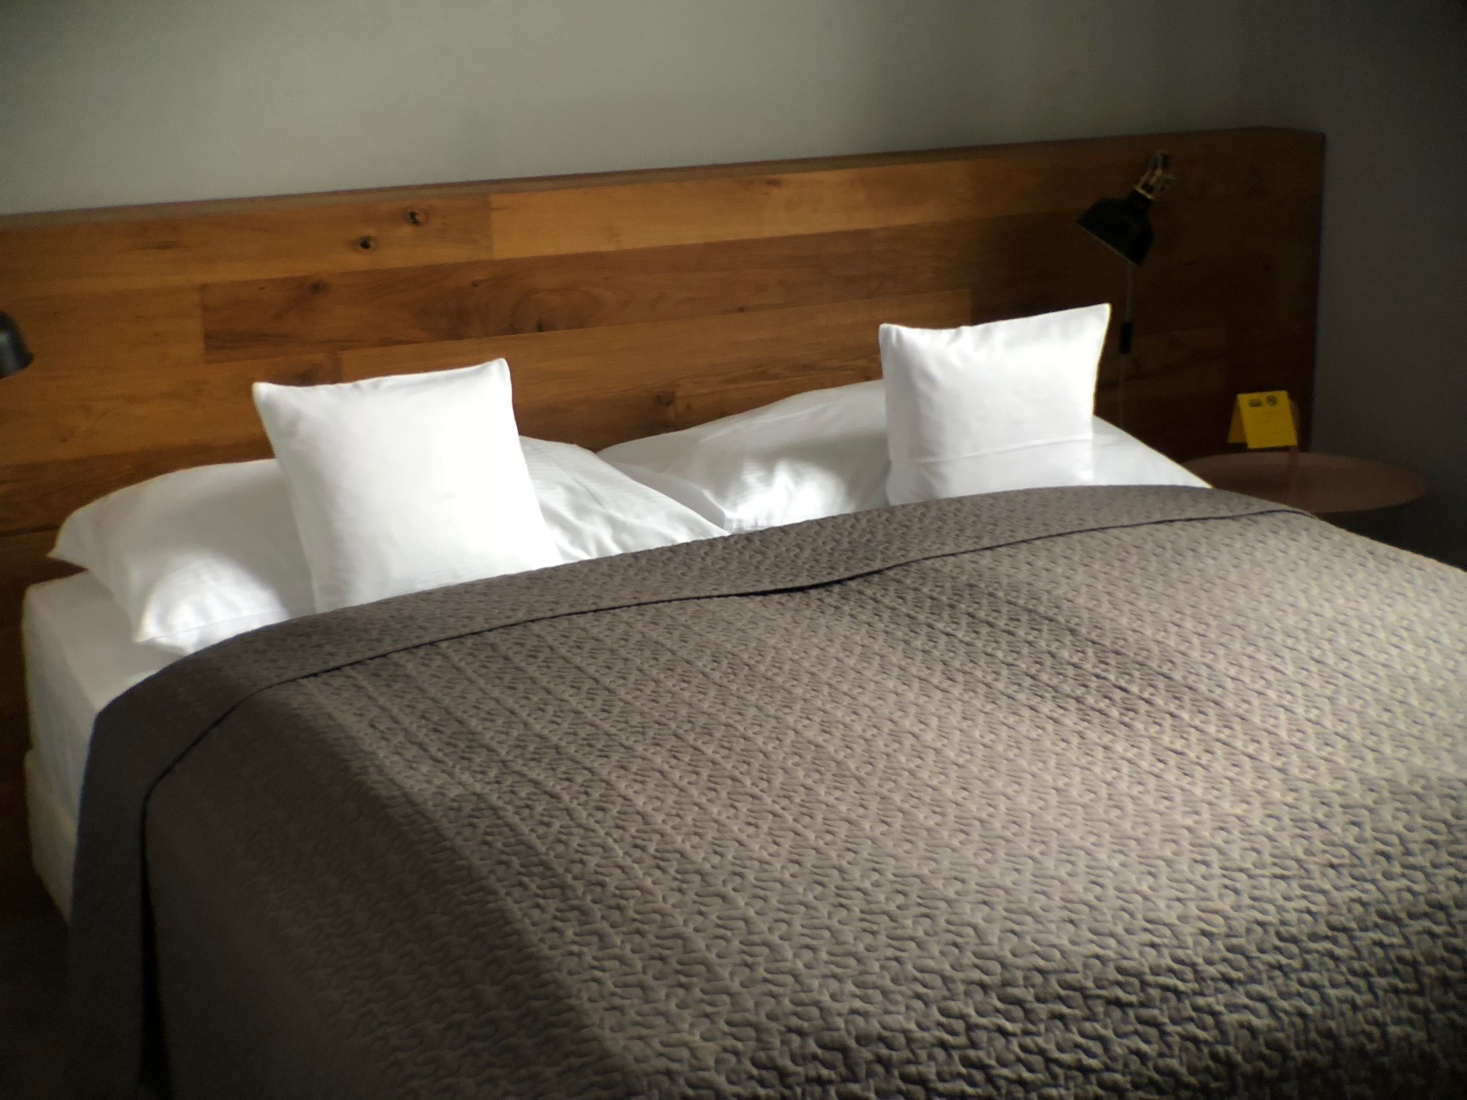 The comfy bed at City.city hotel in Ostrava, Czech Republic.